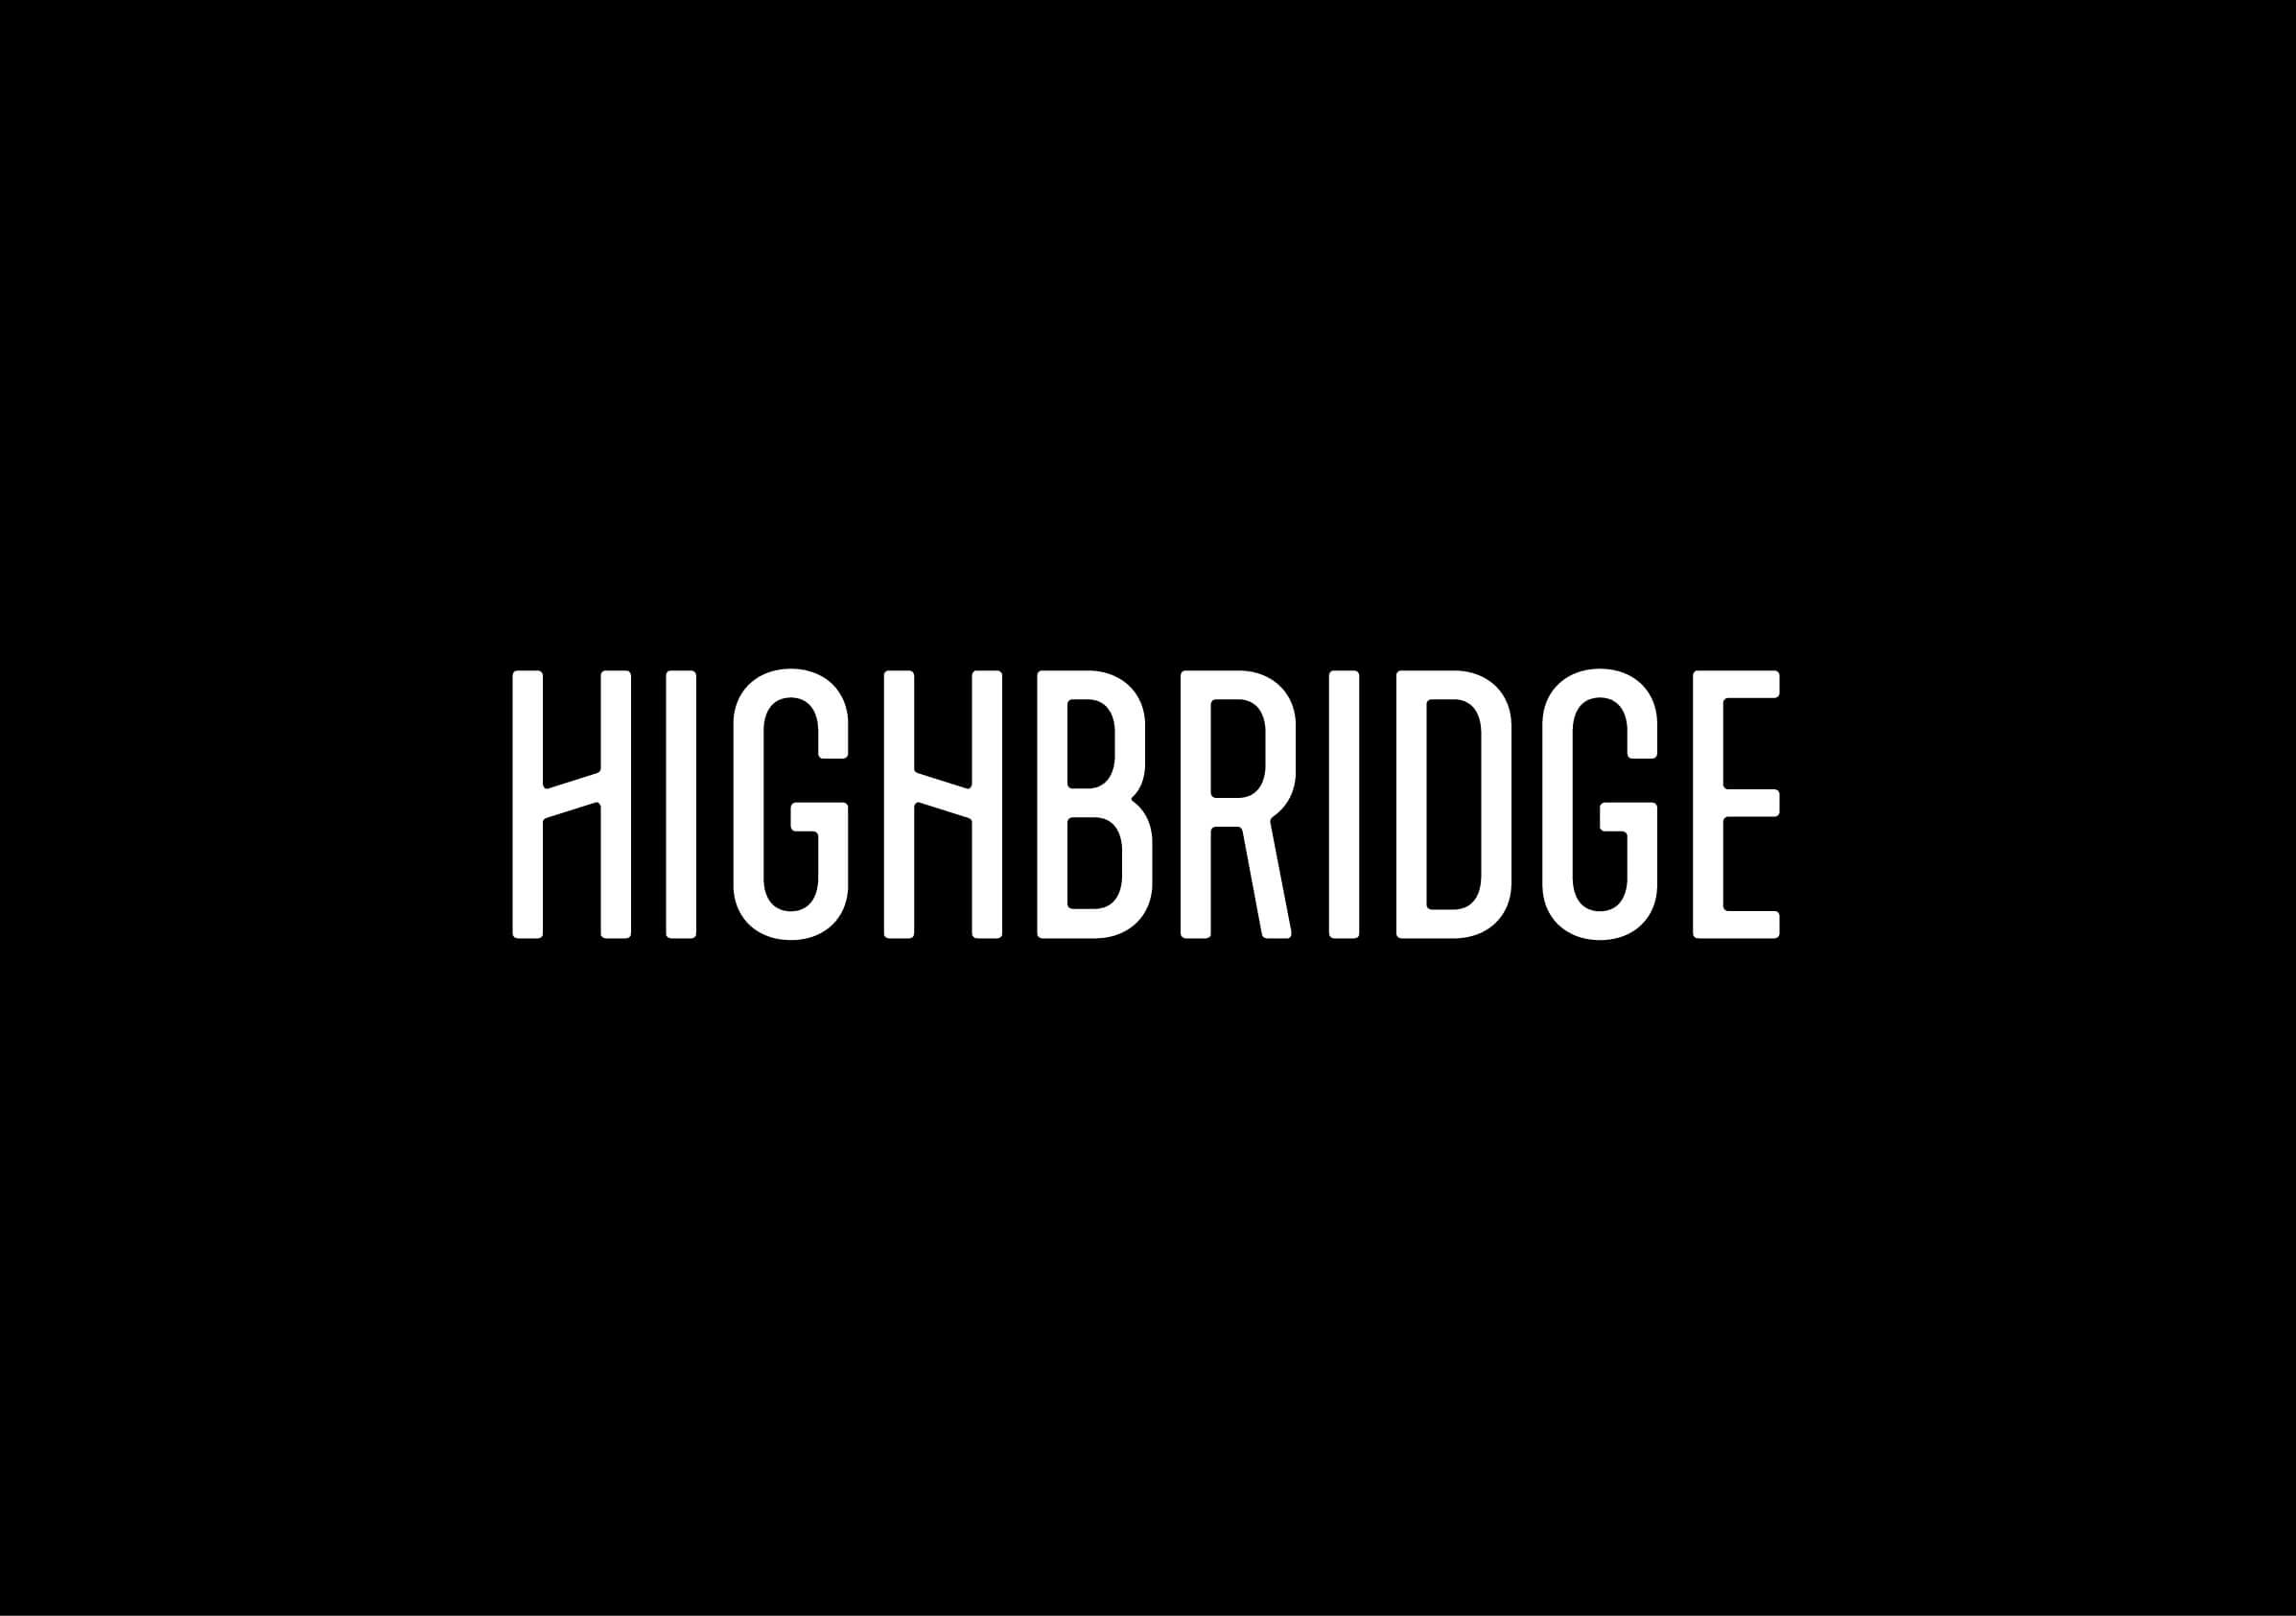 Highbridge Construction logo reversed for Ottawa-based general contractor by graphic designer idApostle